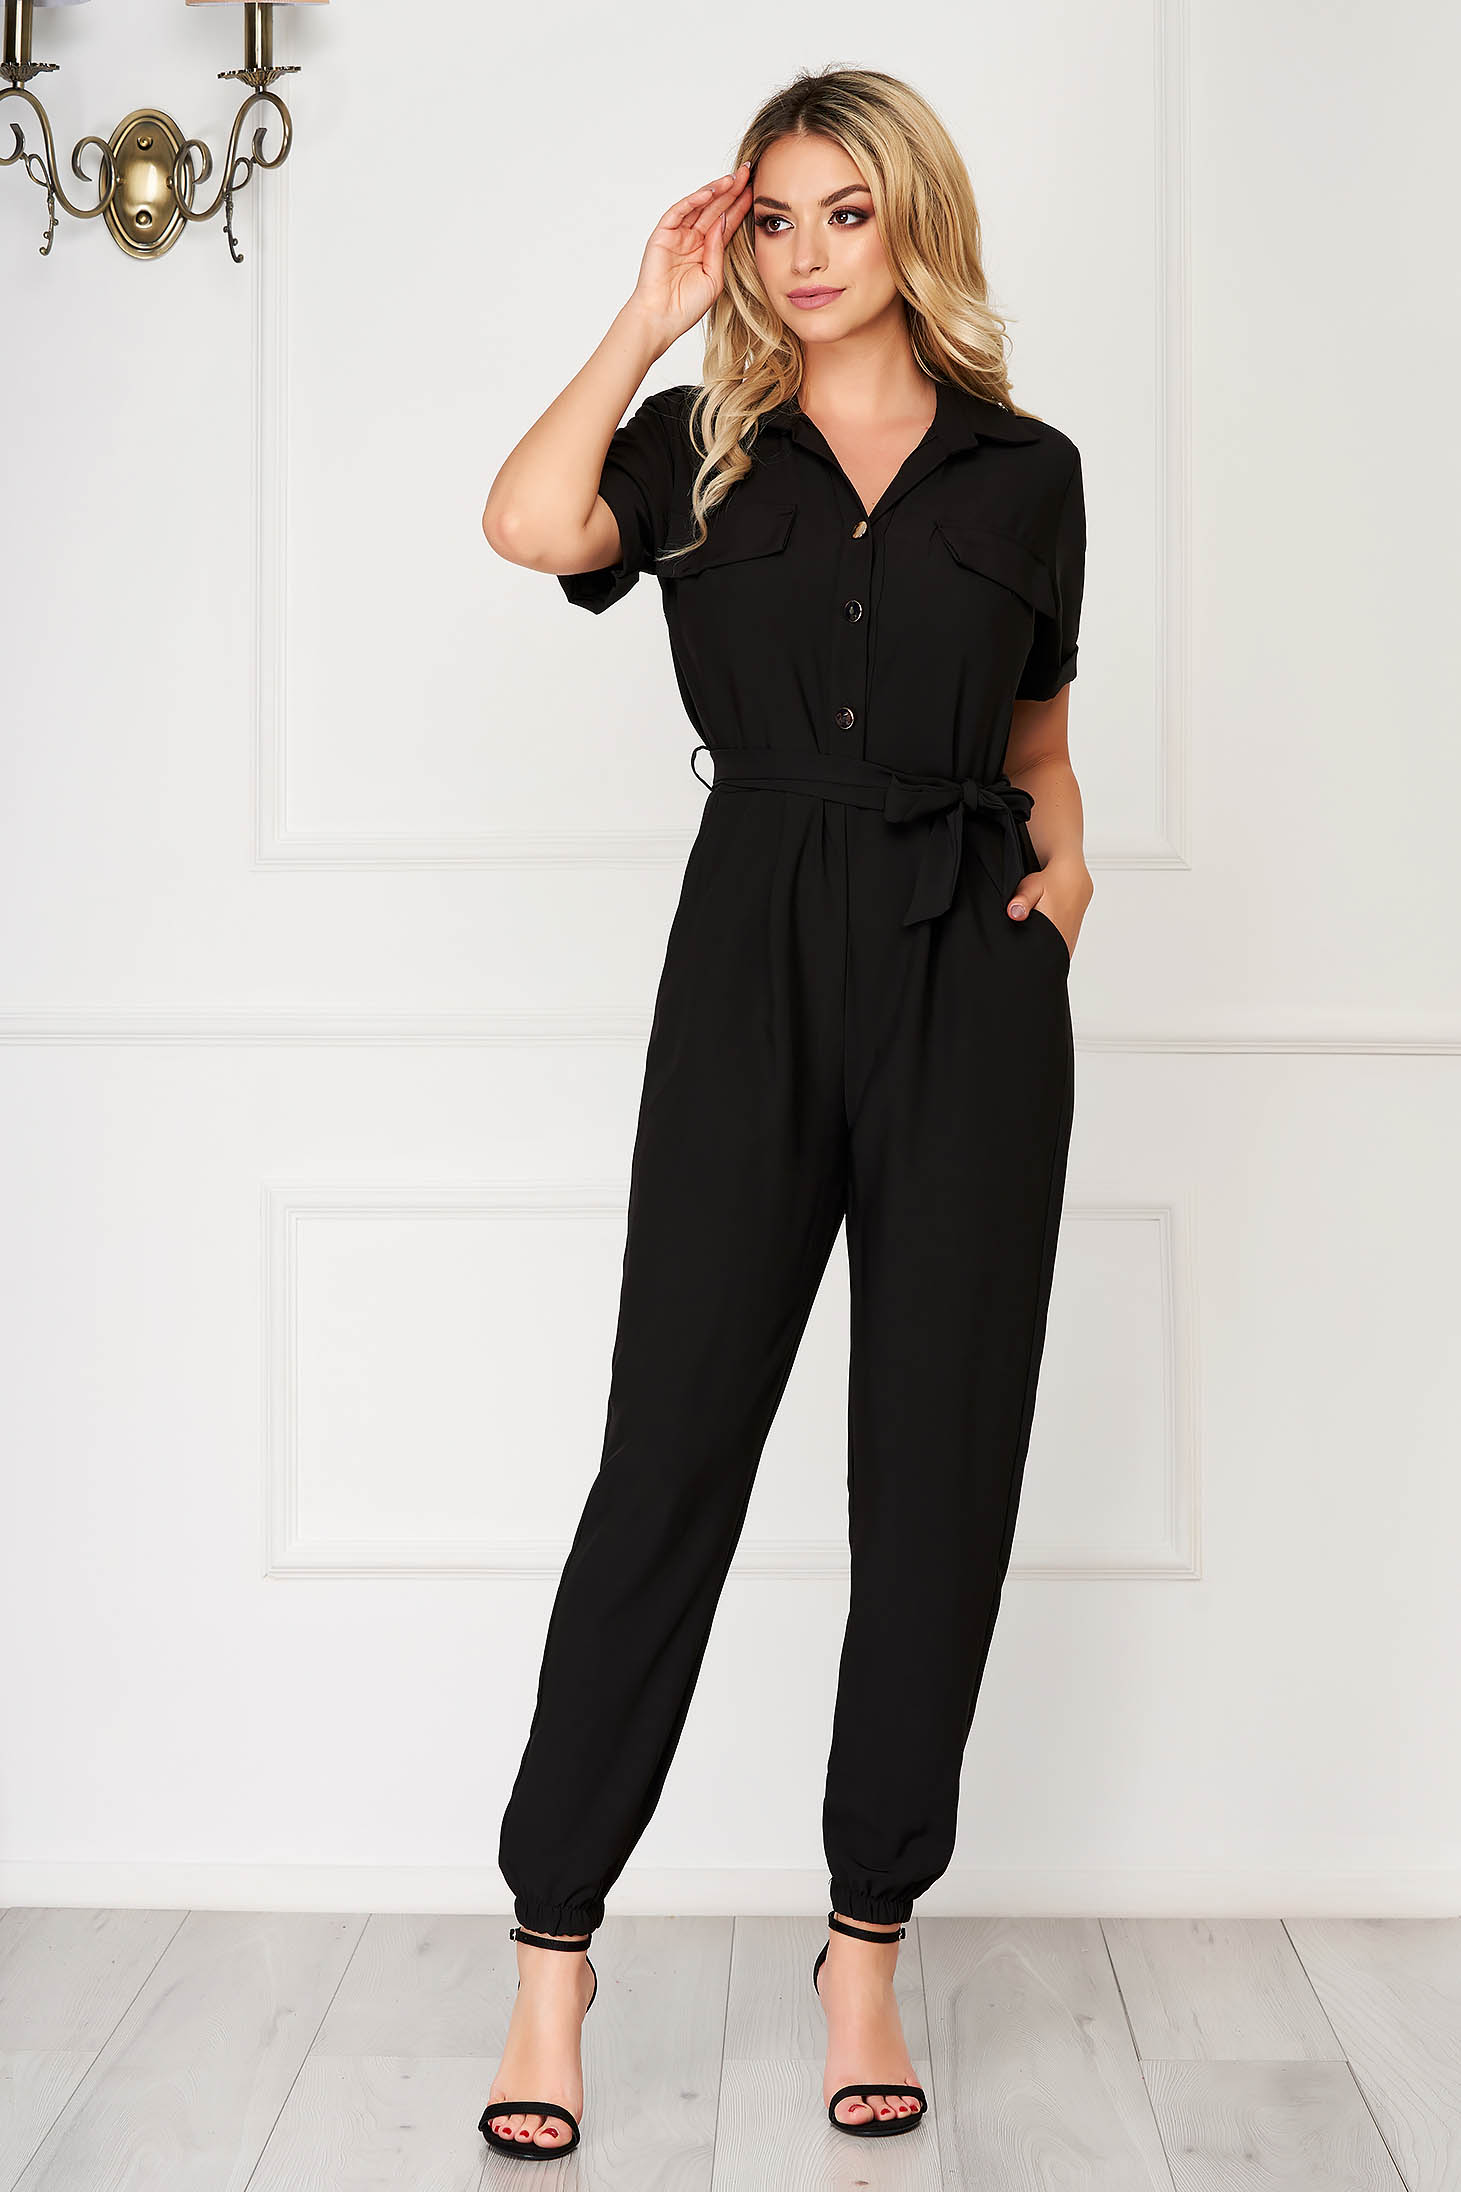 Black jumpsuit casual long short sleeves thin fabric